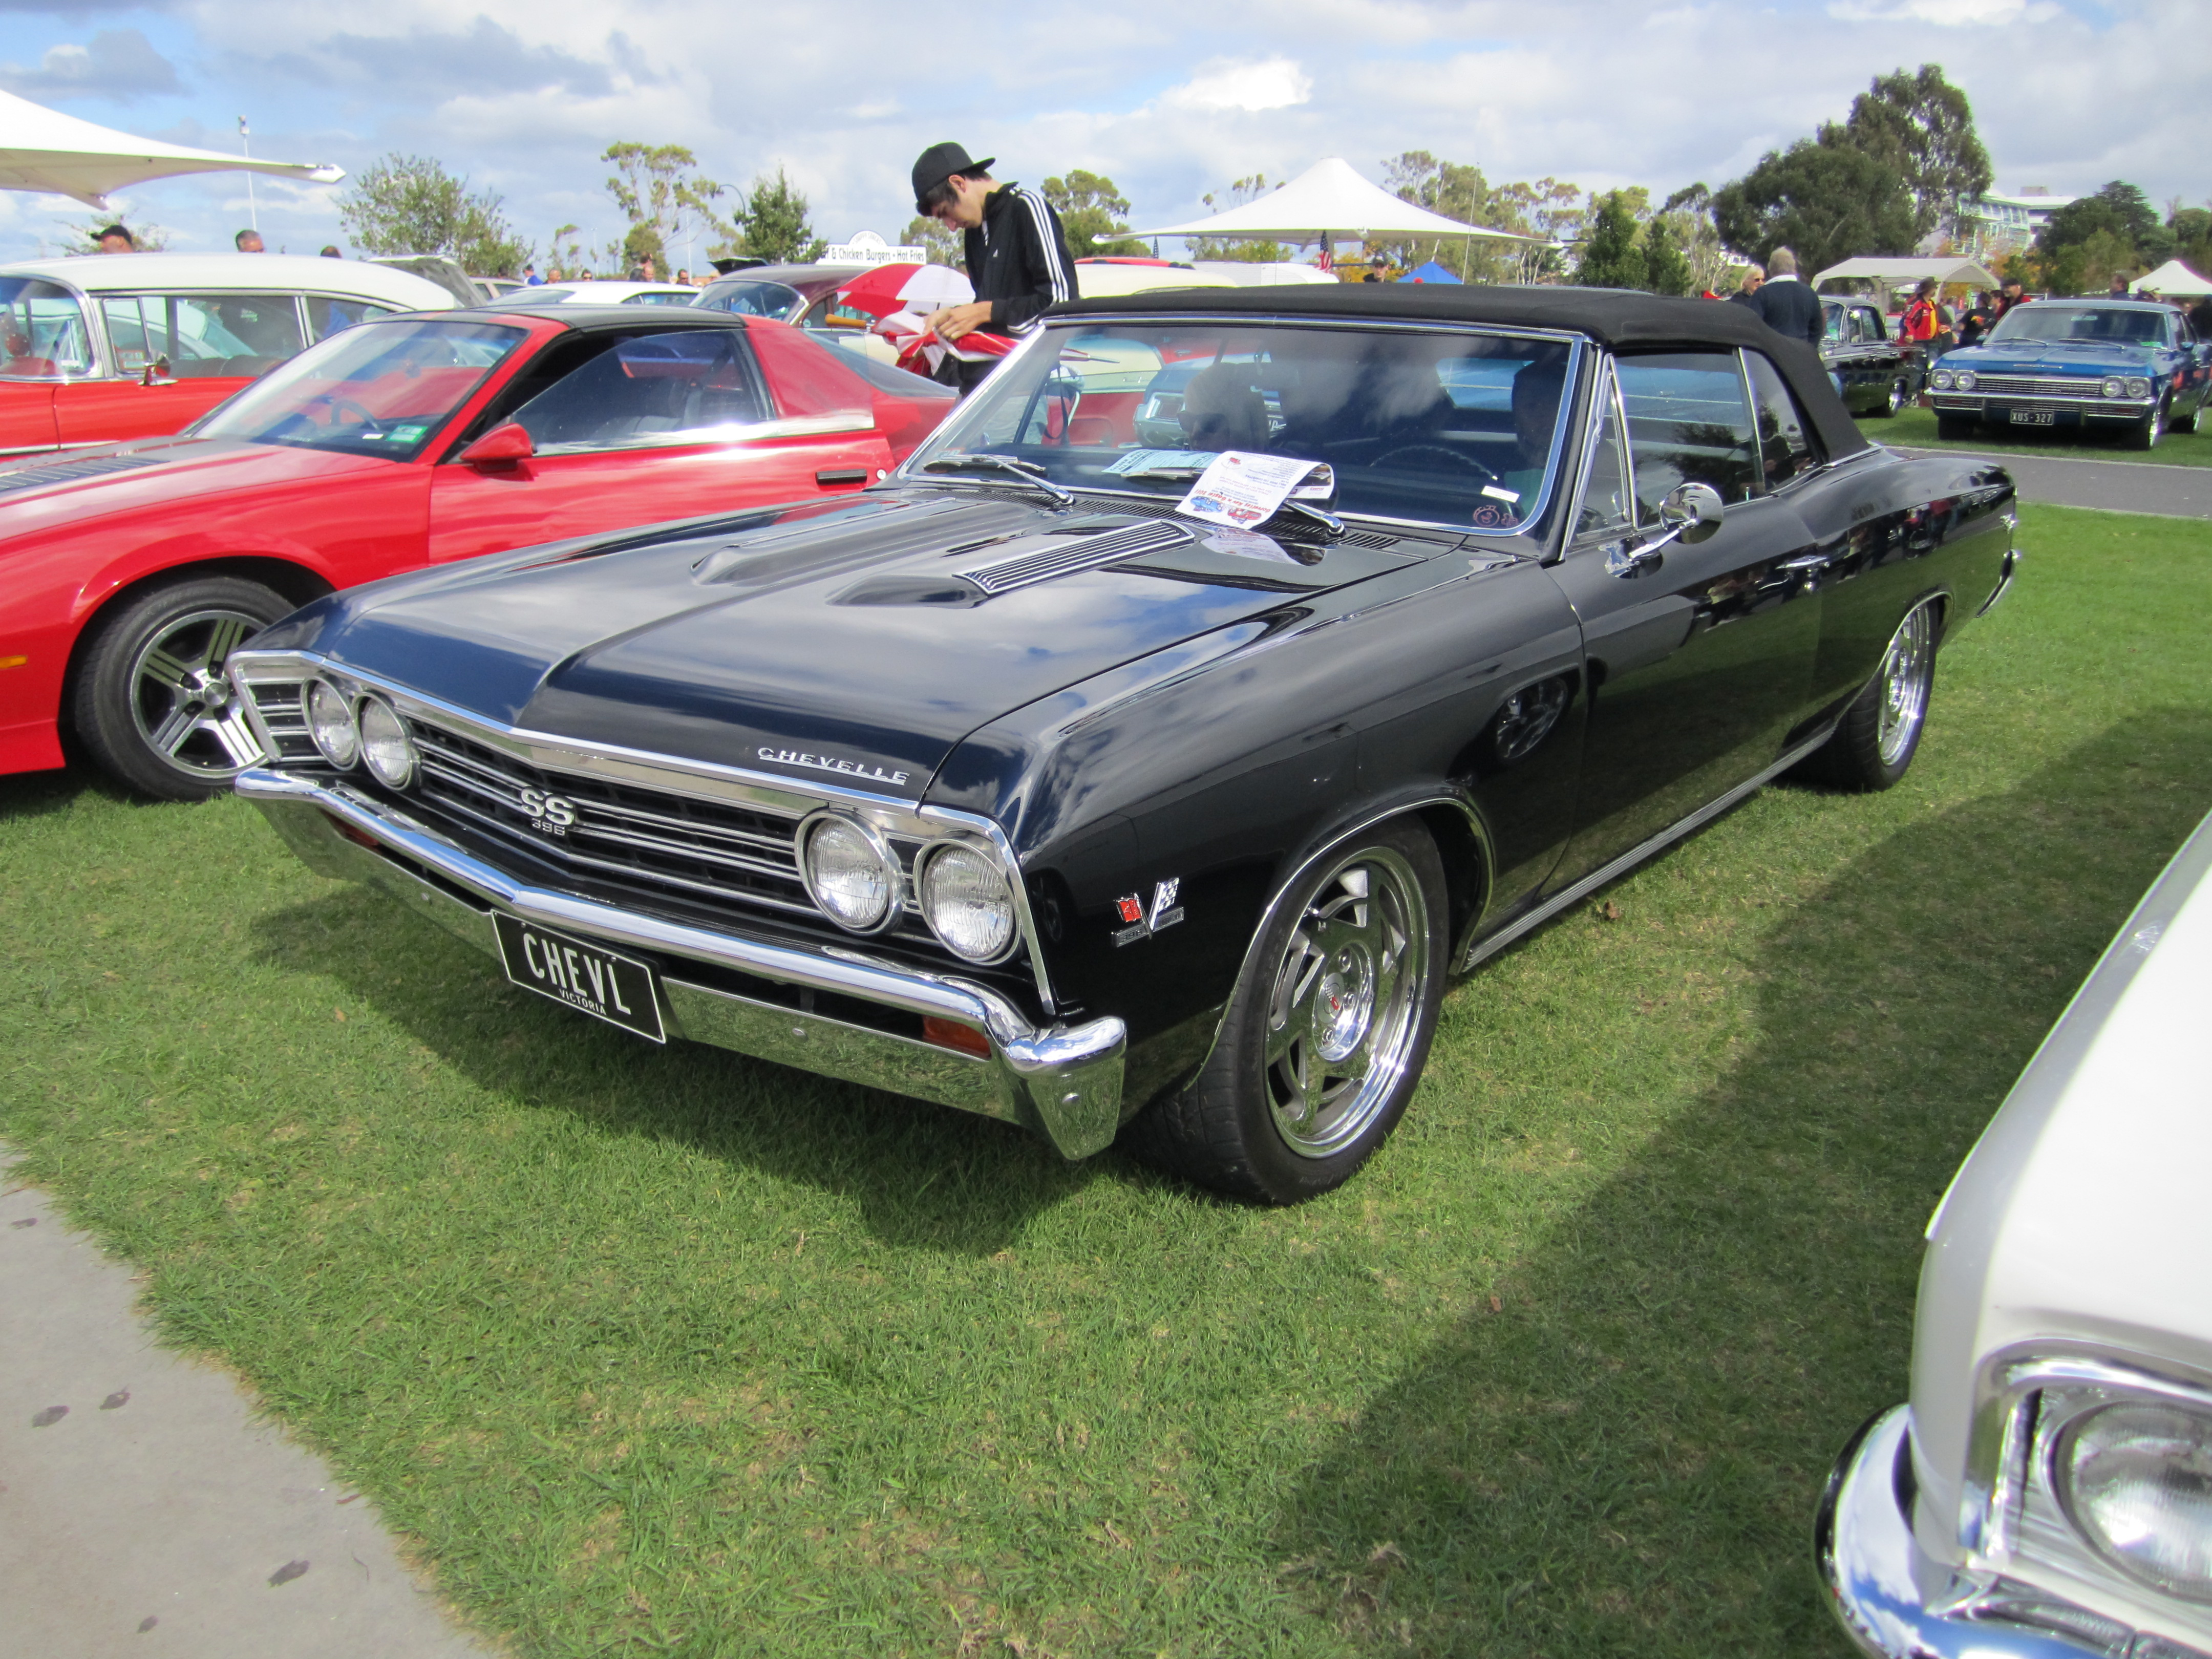 File:Chevrolet Chevelle Convertible SS396 1967 jpg - Wikimedia Commons